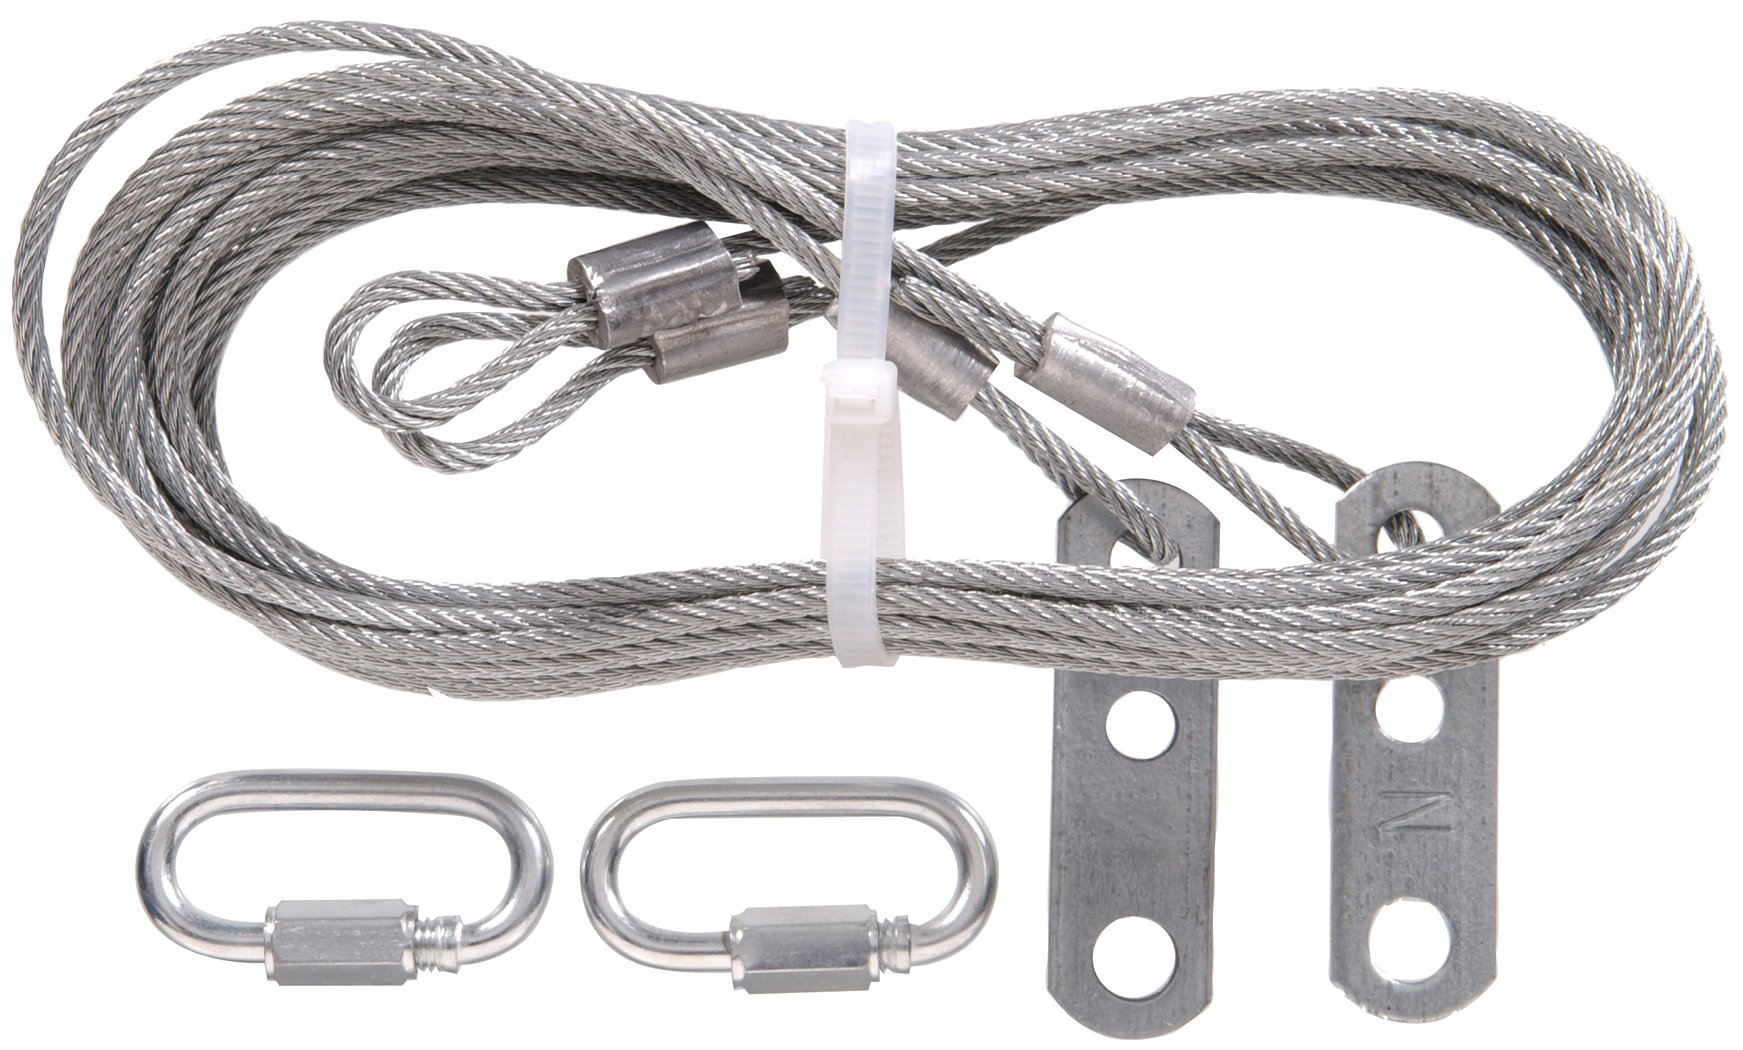 The Hillman Group 852129 1/8-Inch x 8-Feet 8-Inch Safety Cable